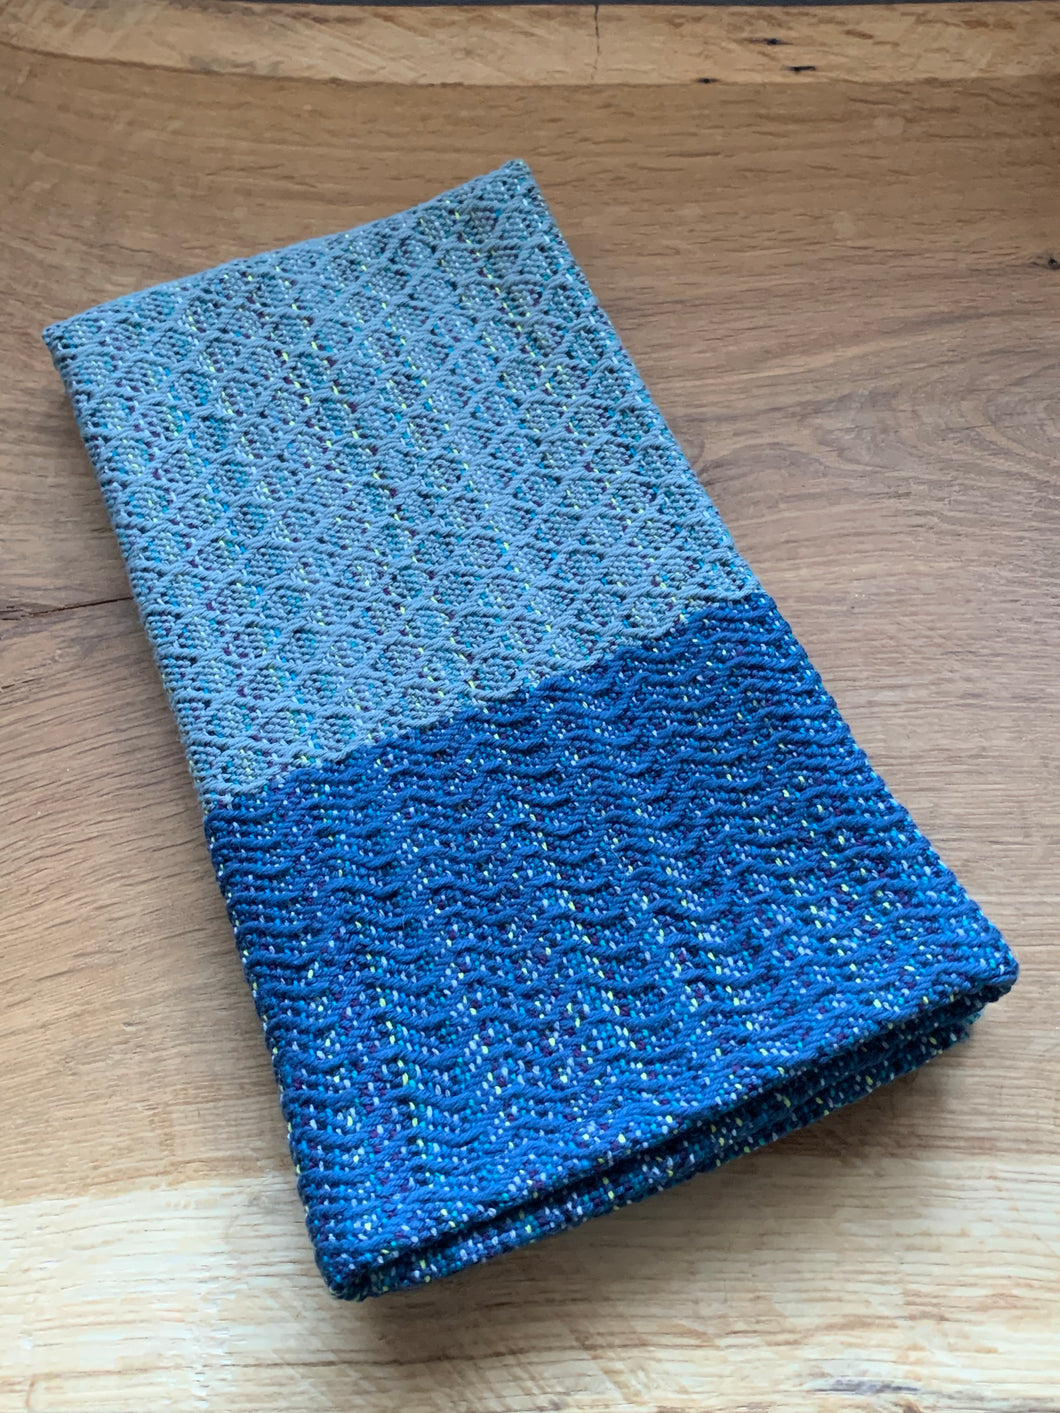 Handwoven Towel - Blue and Grey Diamonds